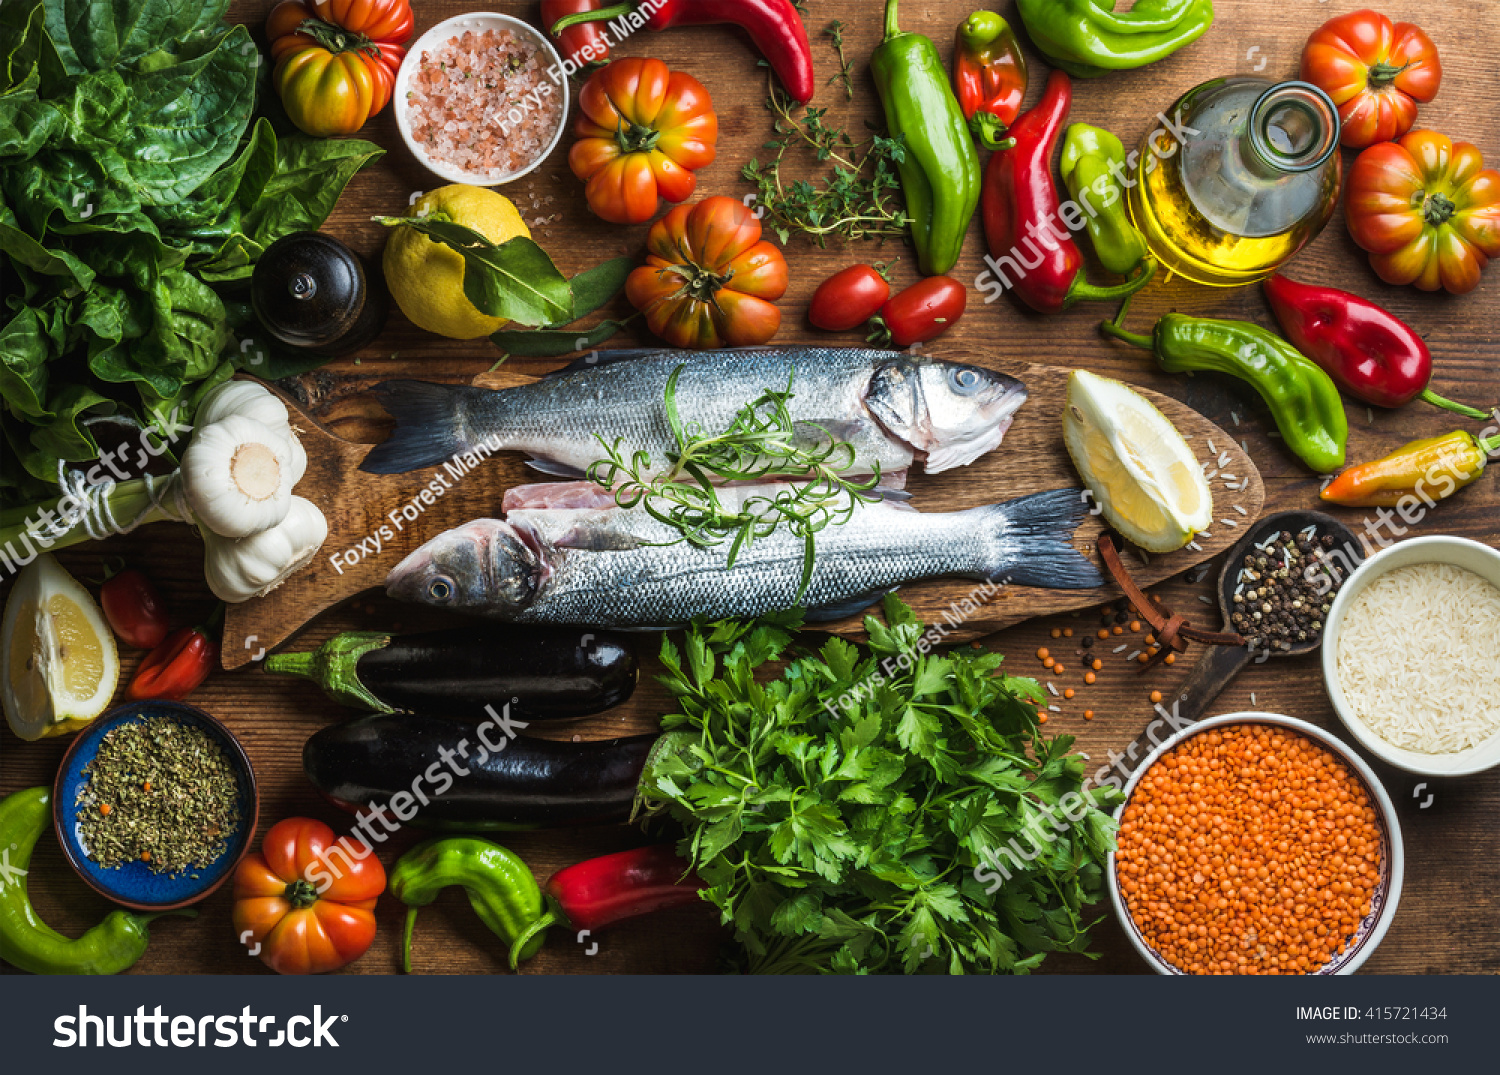 Raw uncooked seabass fish vegetables grains stock photo for What vegetables go with fish